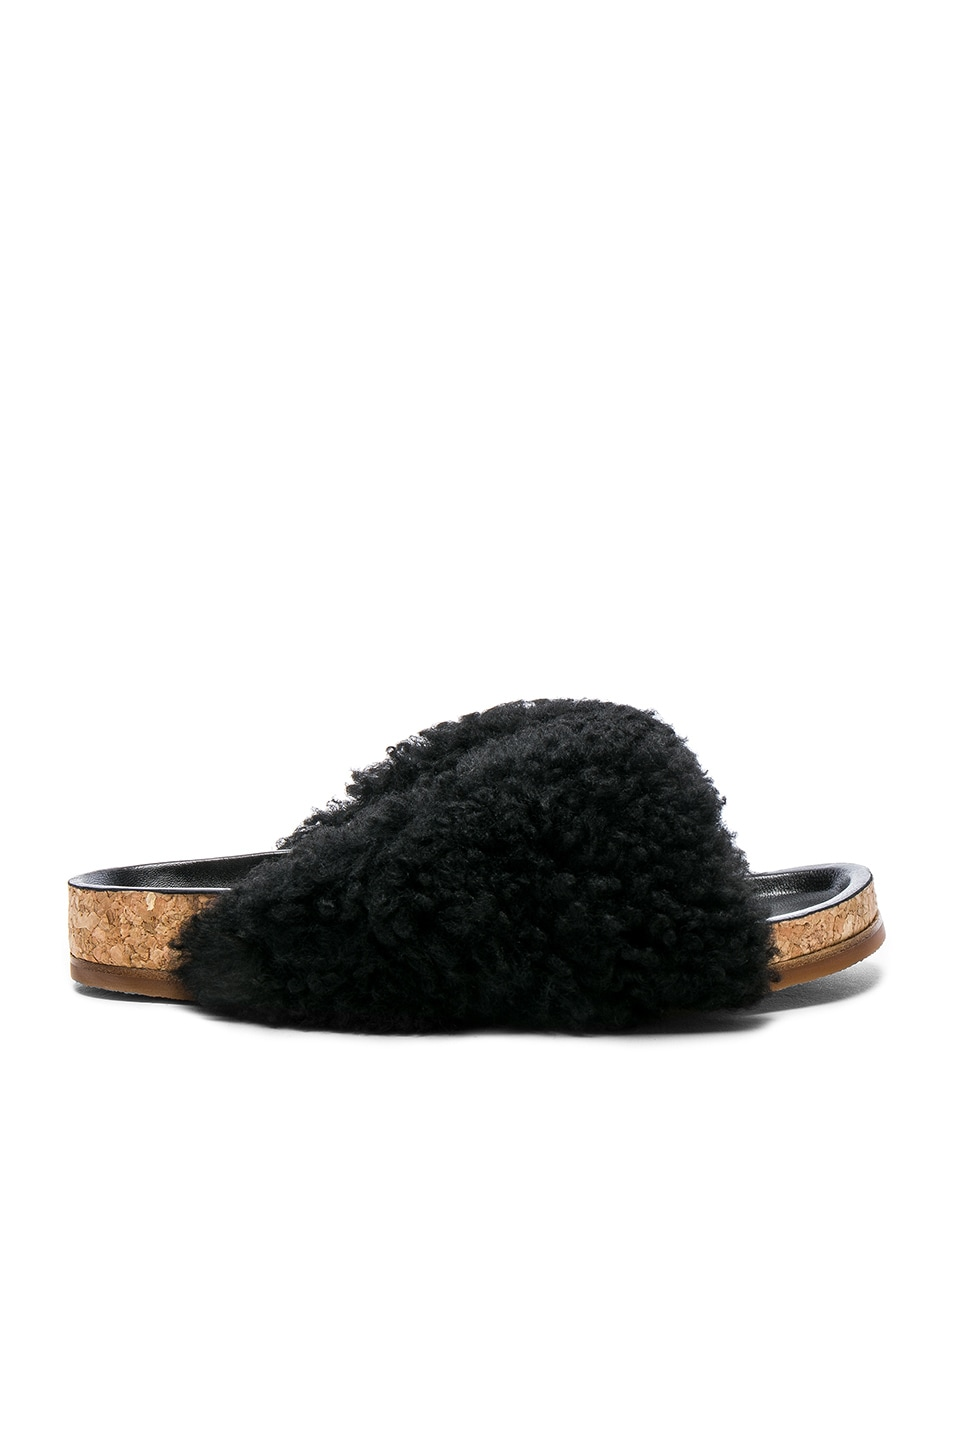 Image 1 of Chloe Shearling Fur Kerenn Sandals in Black